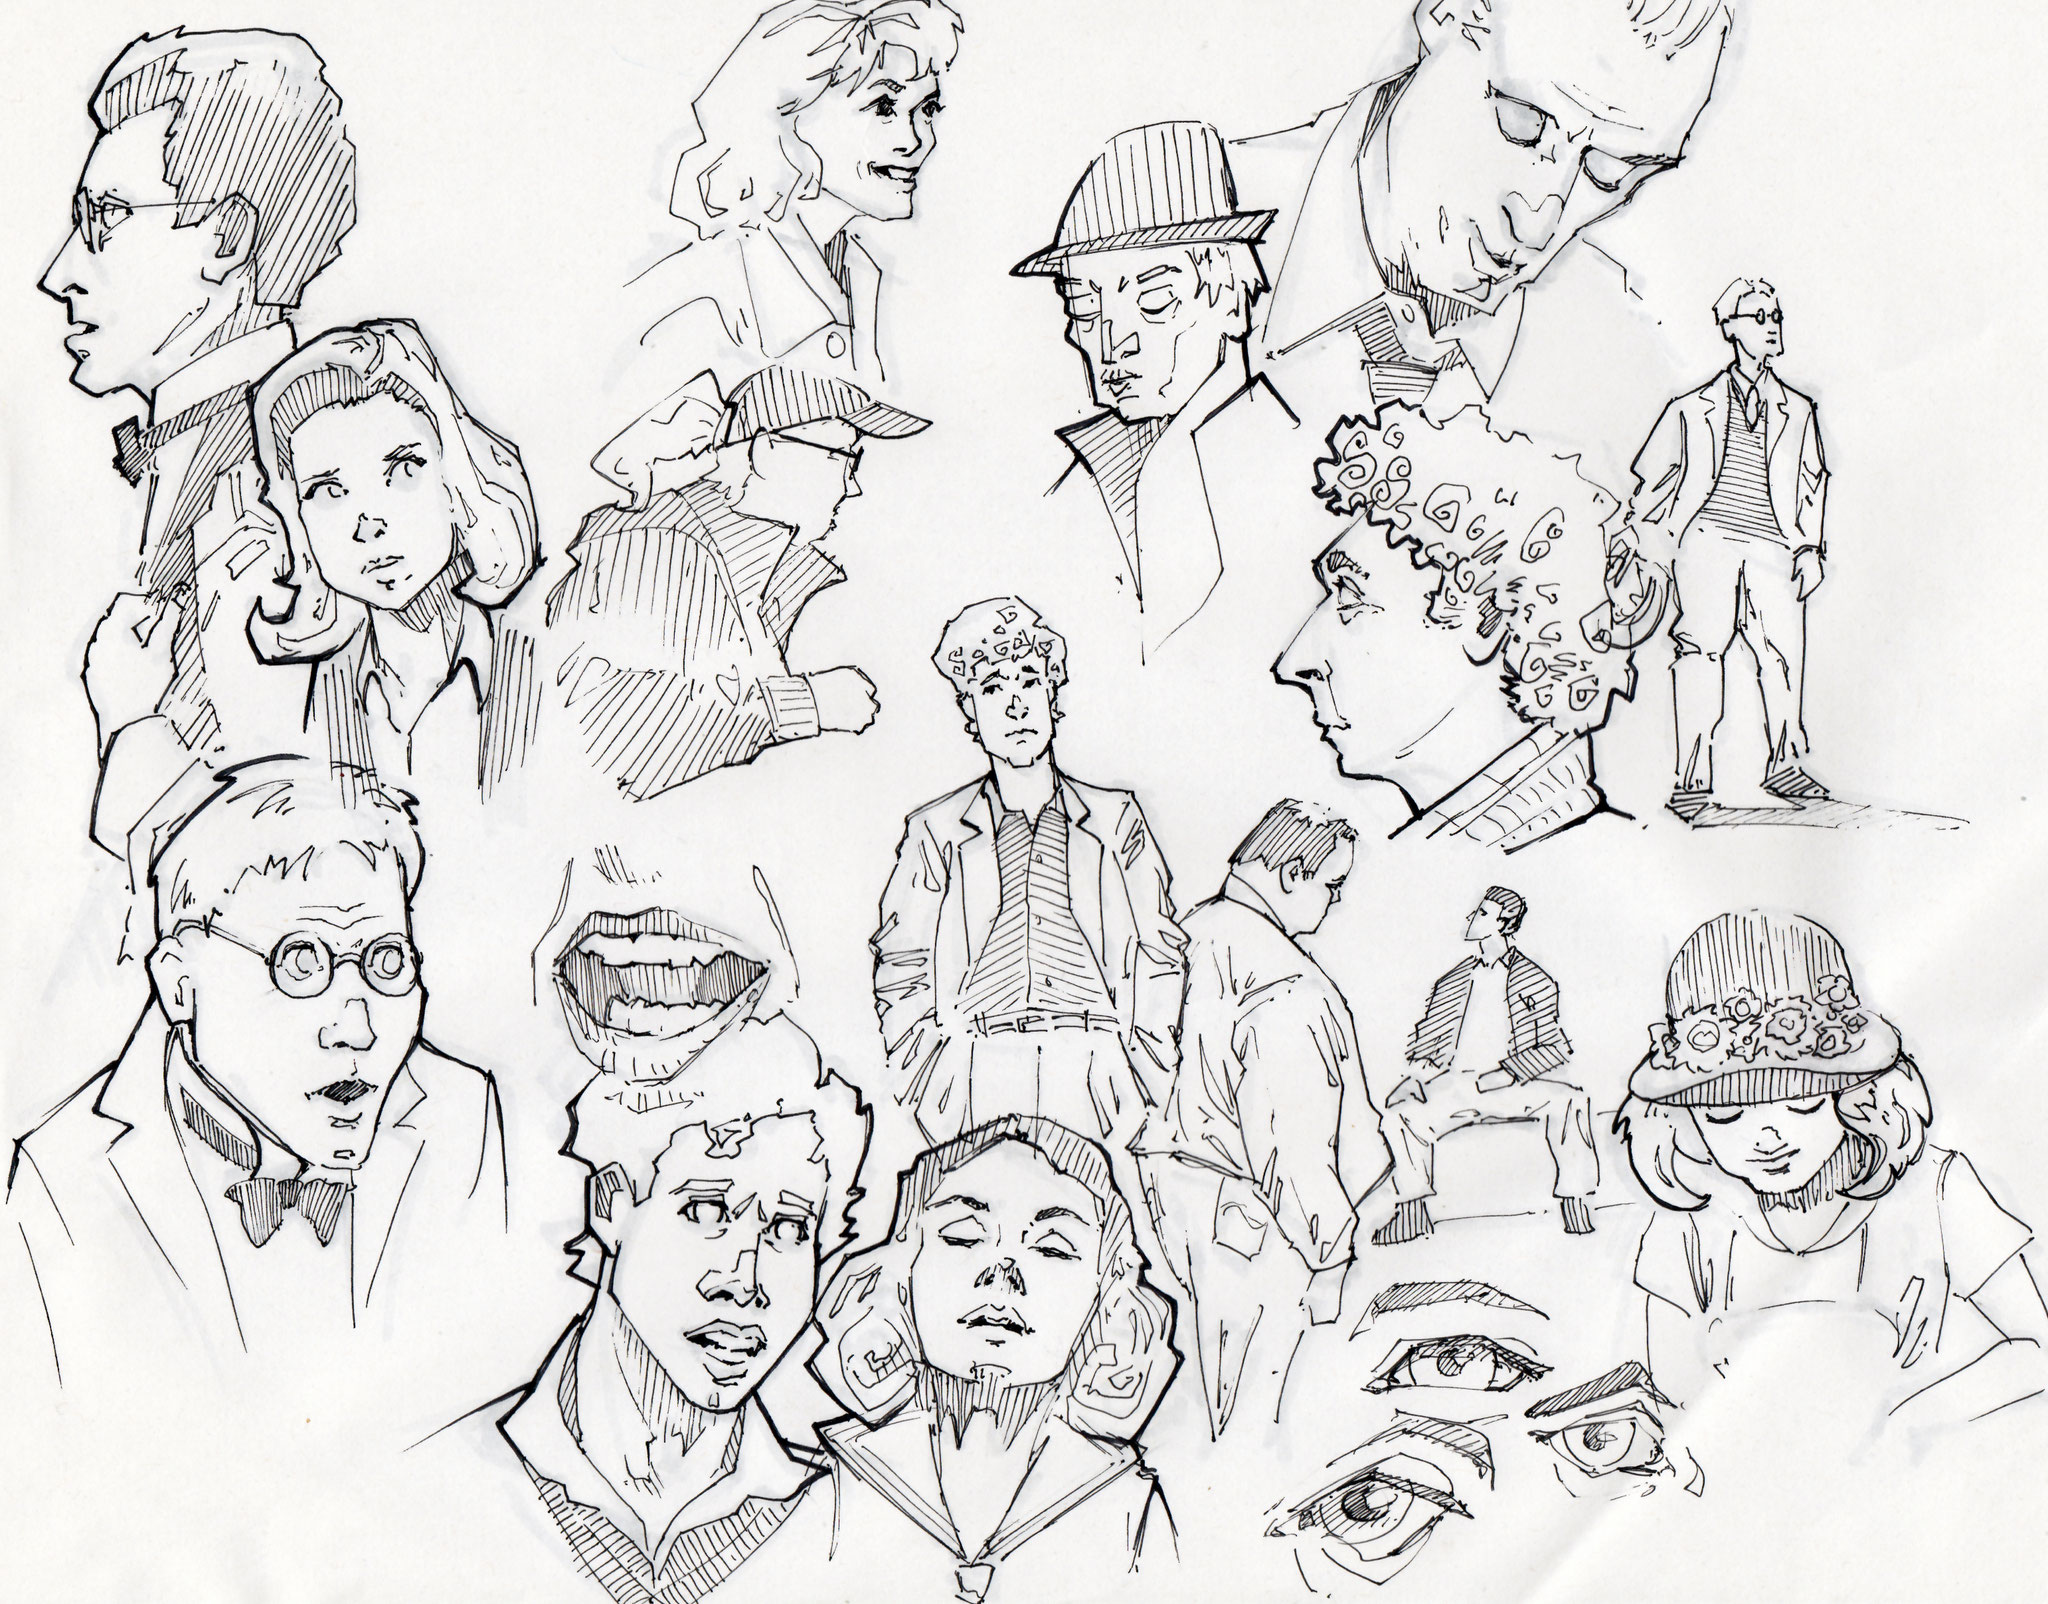 Sketchbook 09 - Peter Bartels - Illustration - Concept Art